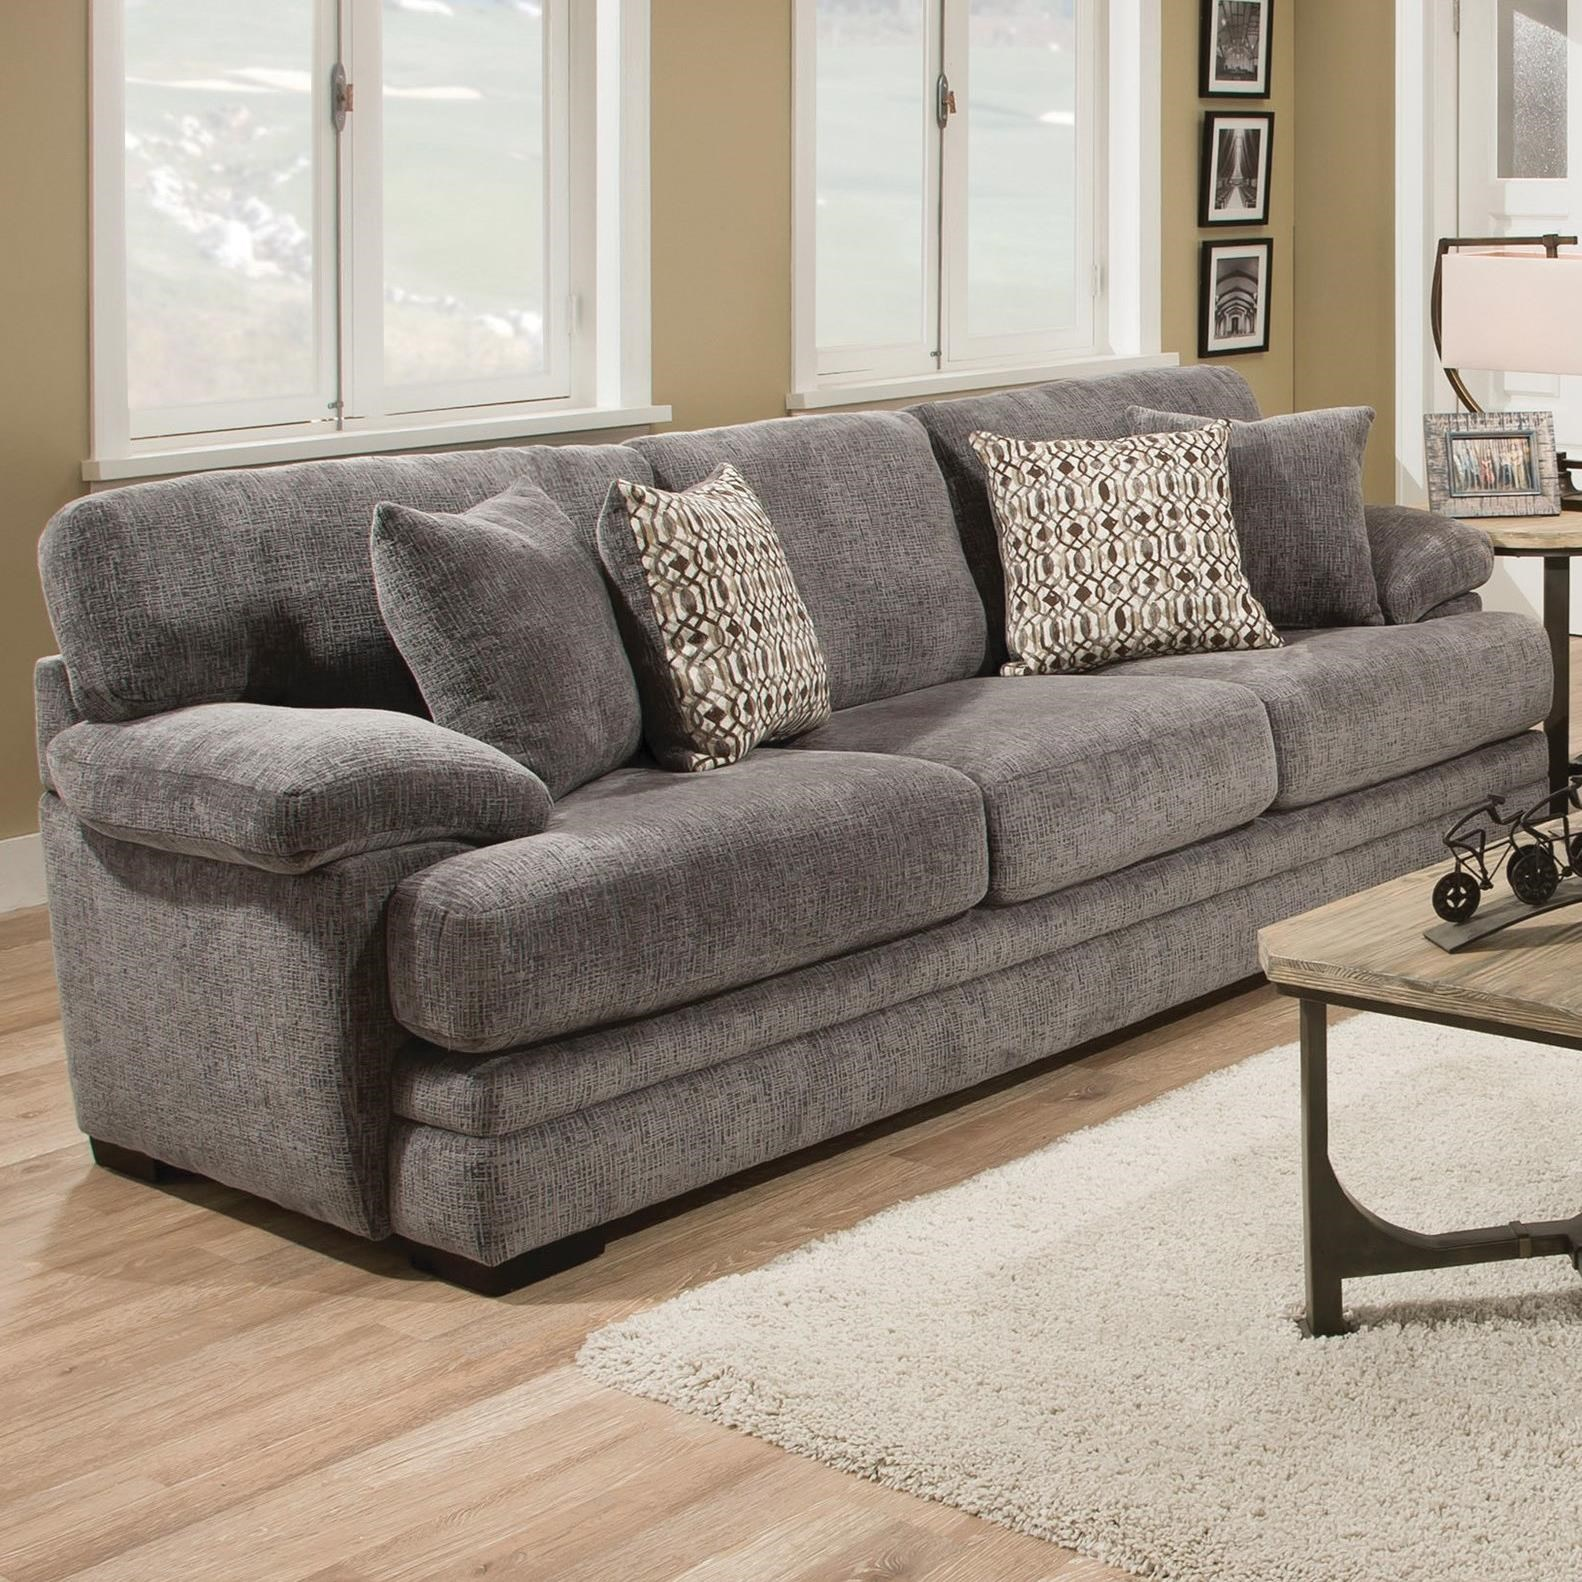 8662 Casual Sofa With Plush Pillow Arms By Albany At Furniture And Appliancemart